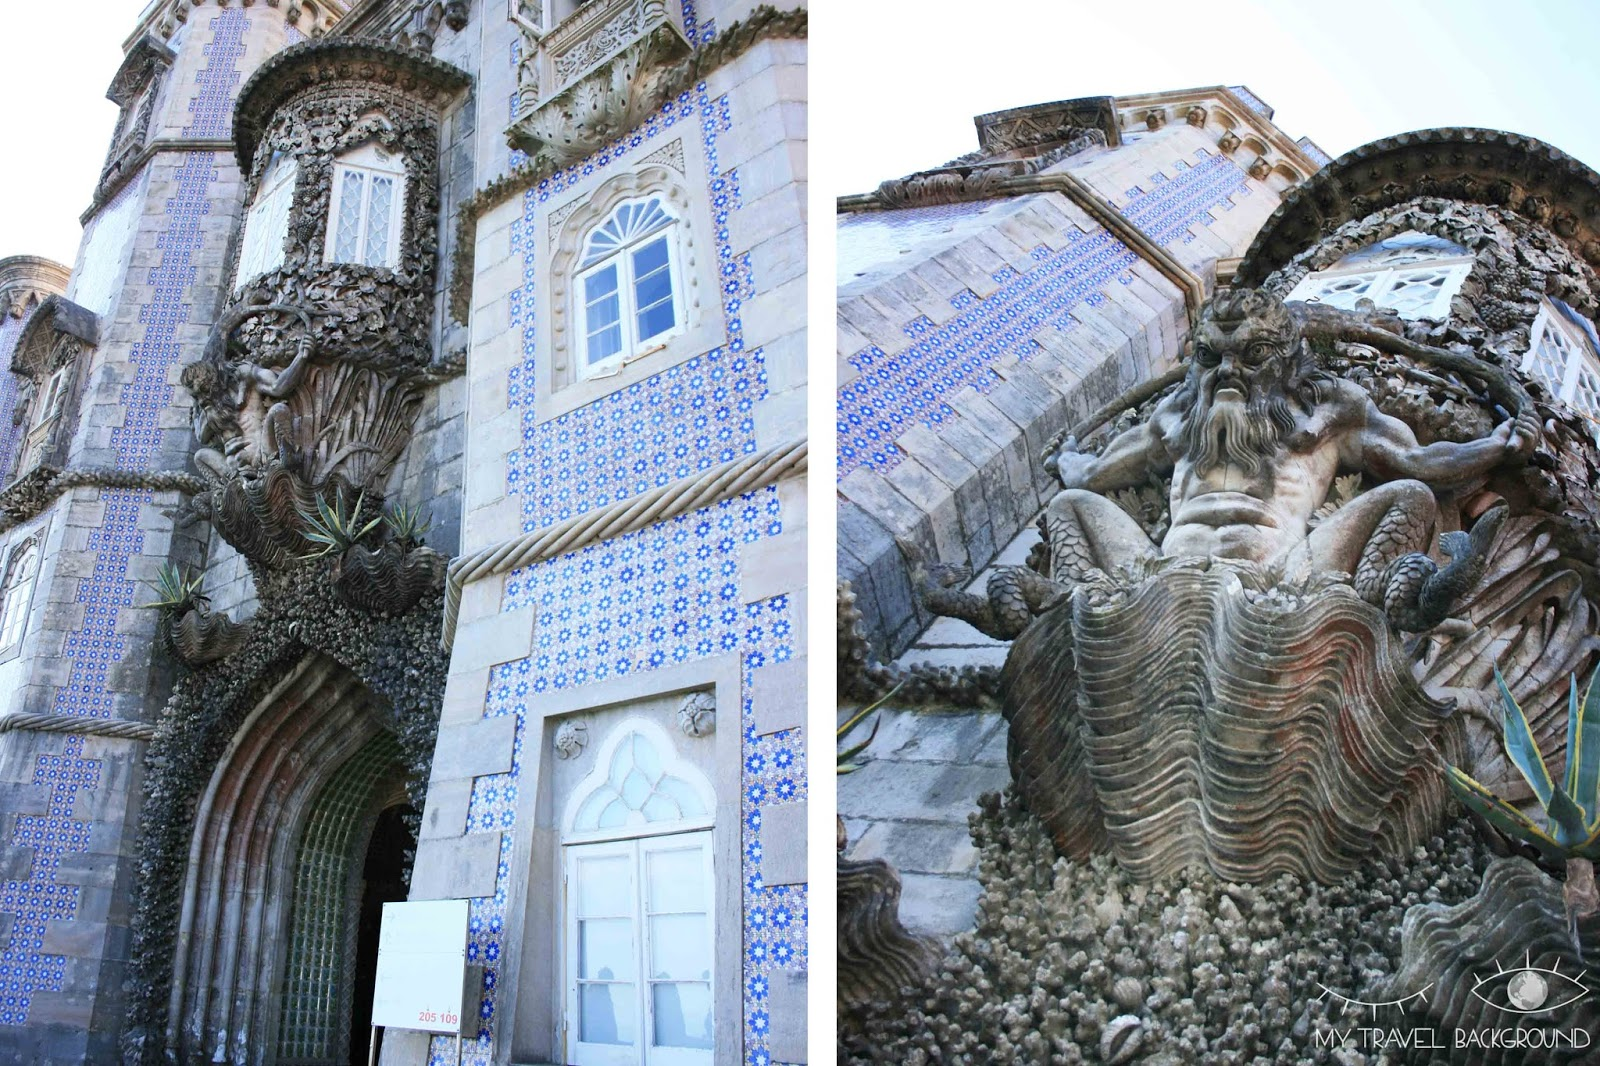 My Travel Background : Escale à Sintra, au Portugal - Le Palais de Pena